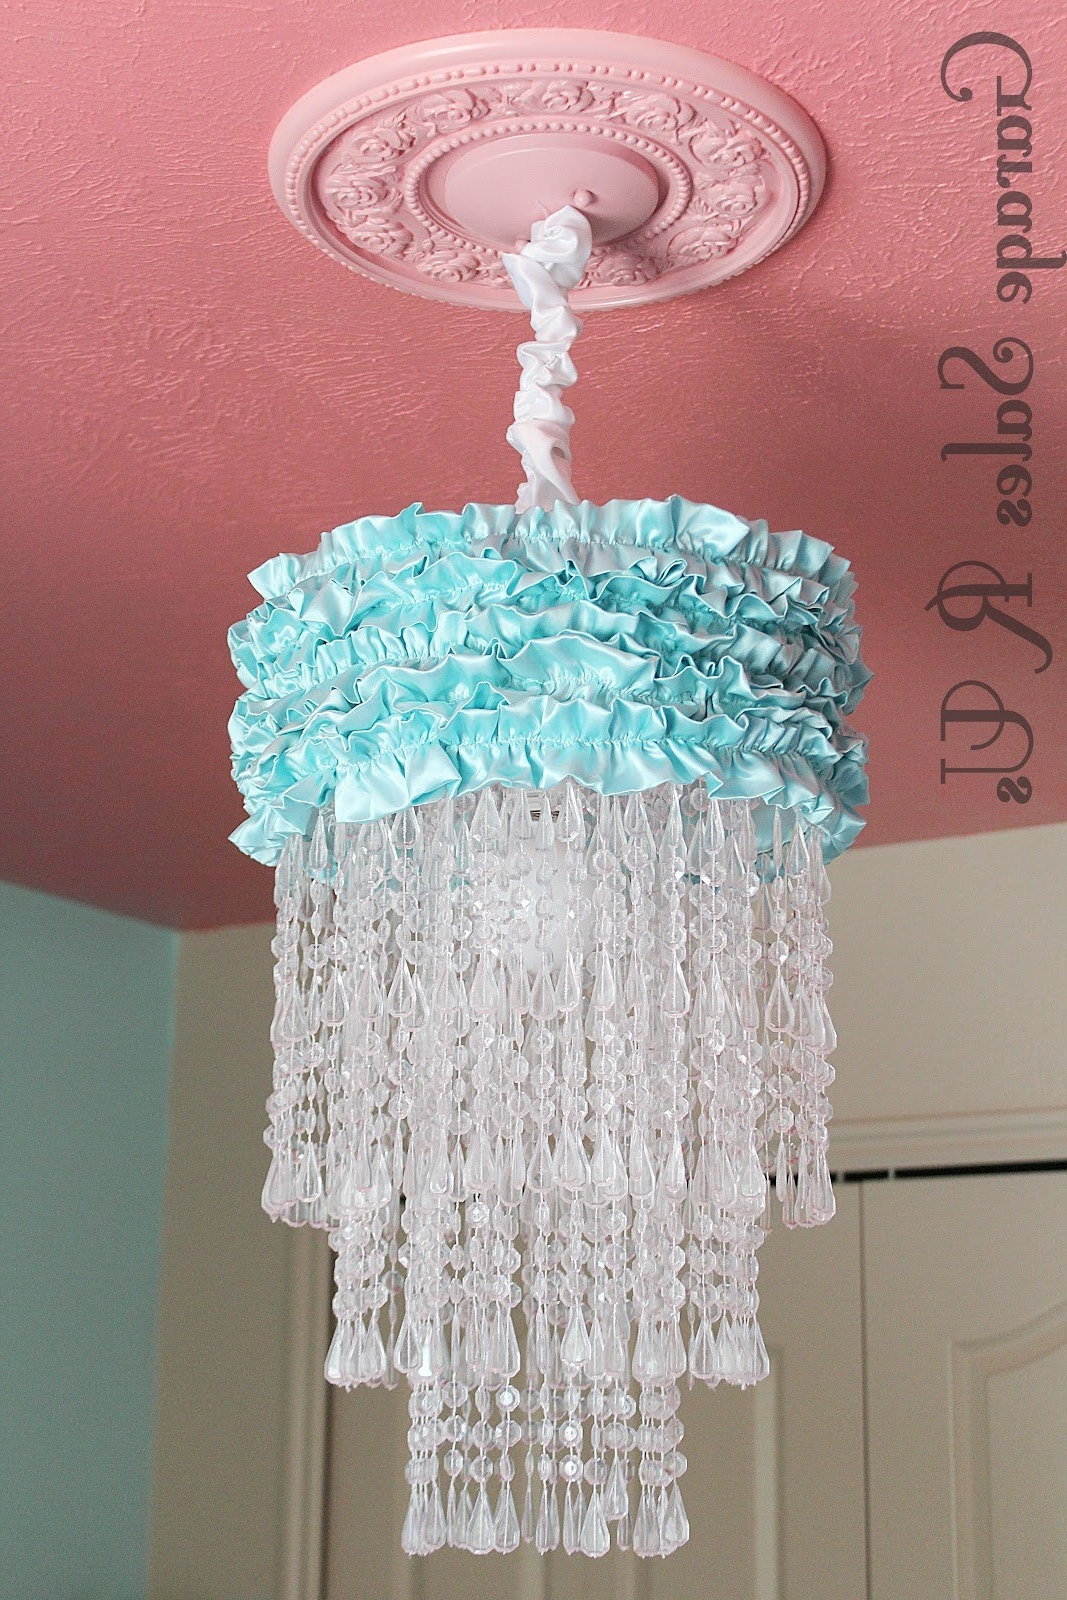 Current Diy Turquoise Beaded Chandeliers With Regard To 25 Diy Chandelier Ideas (View 2 of 15)